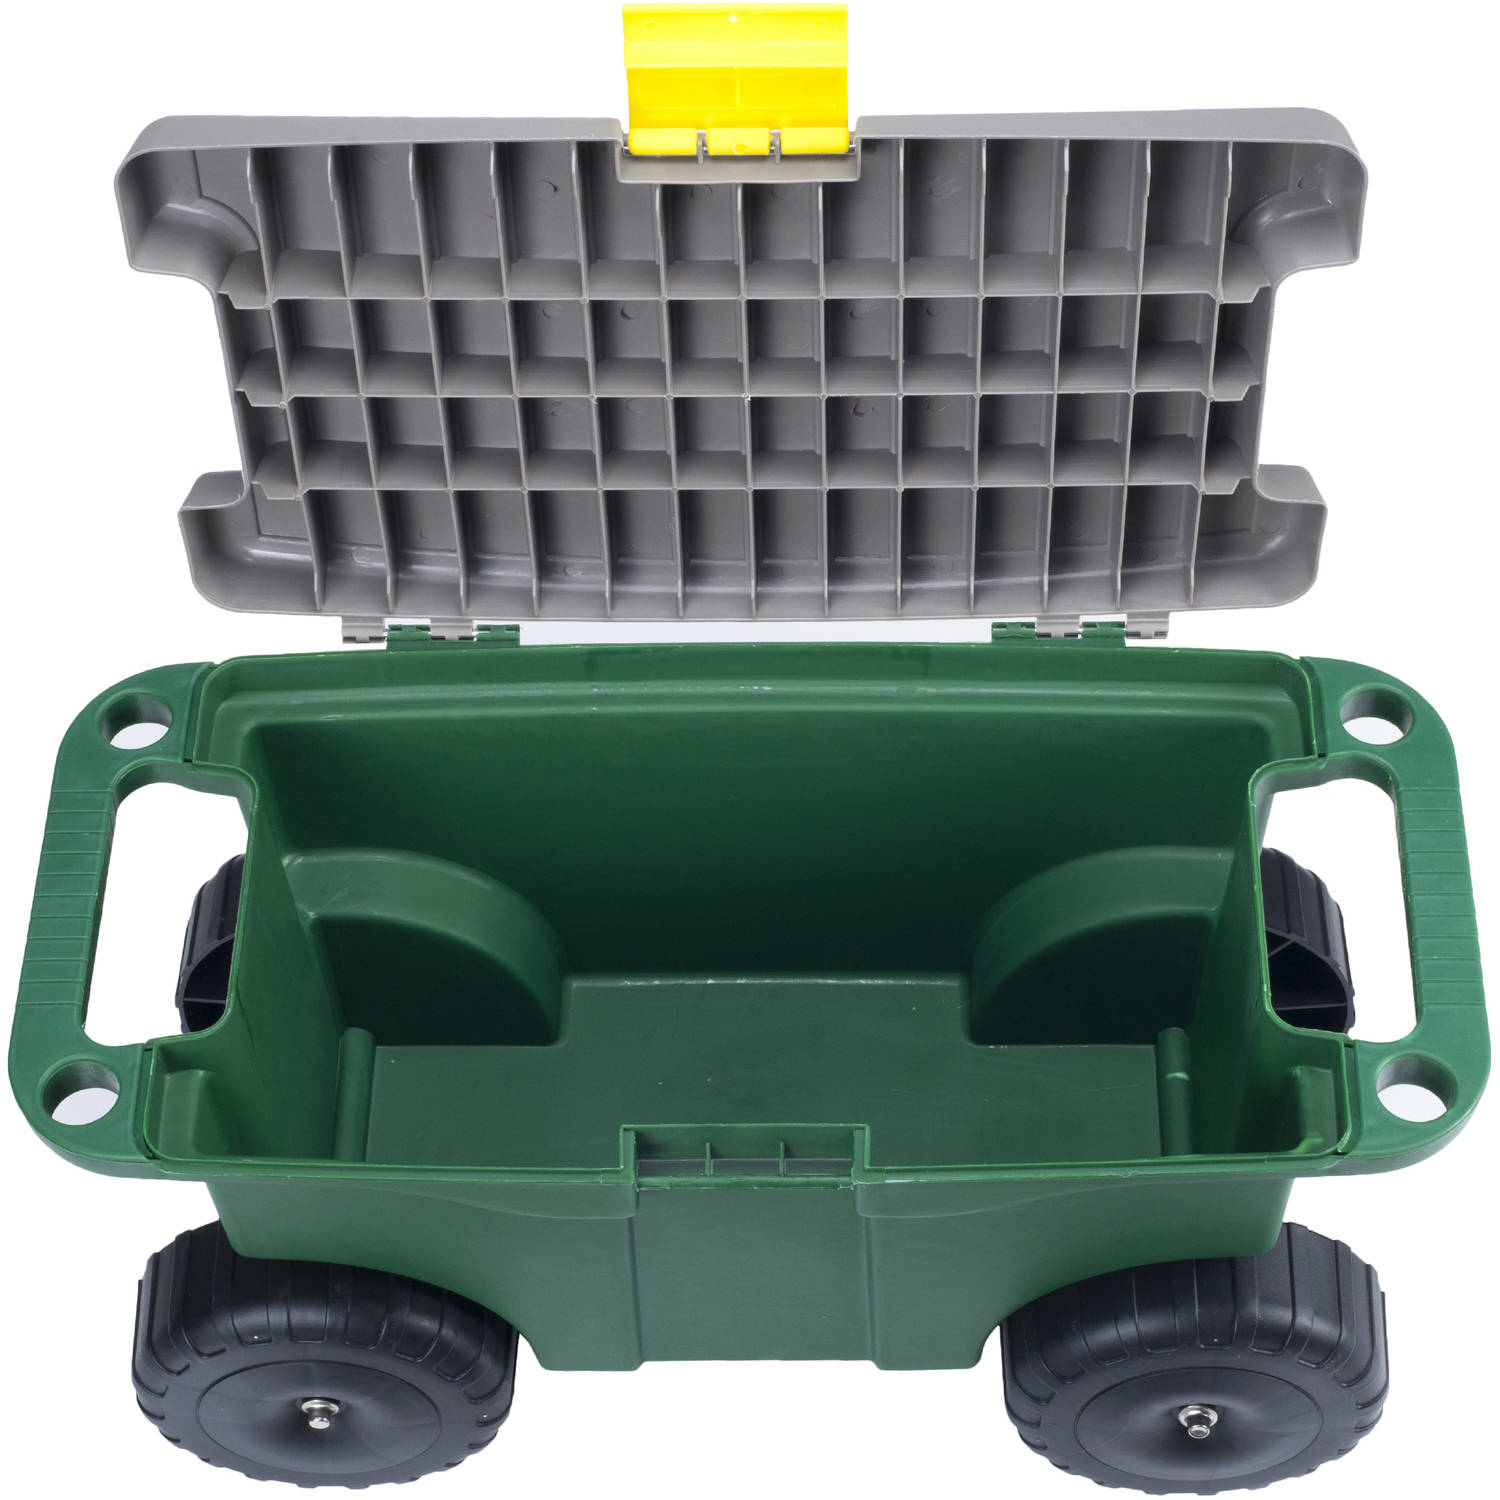 20 Inch Plastic Garden Storage Cart /& Rolling Garden Scooter Tools Cart Supply